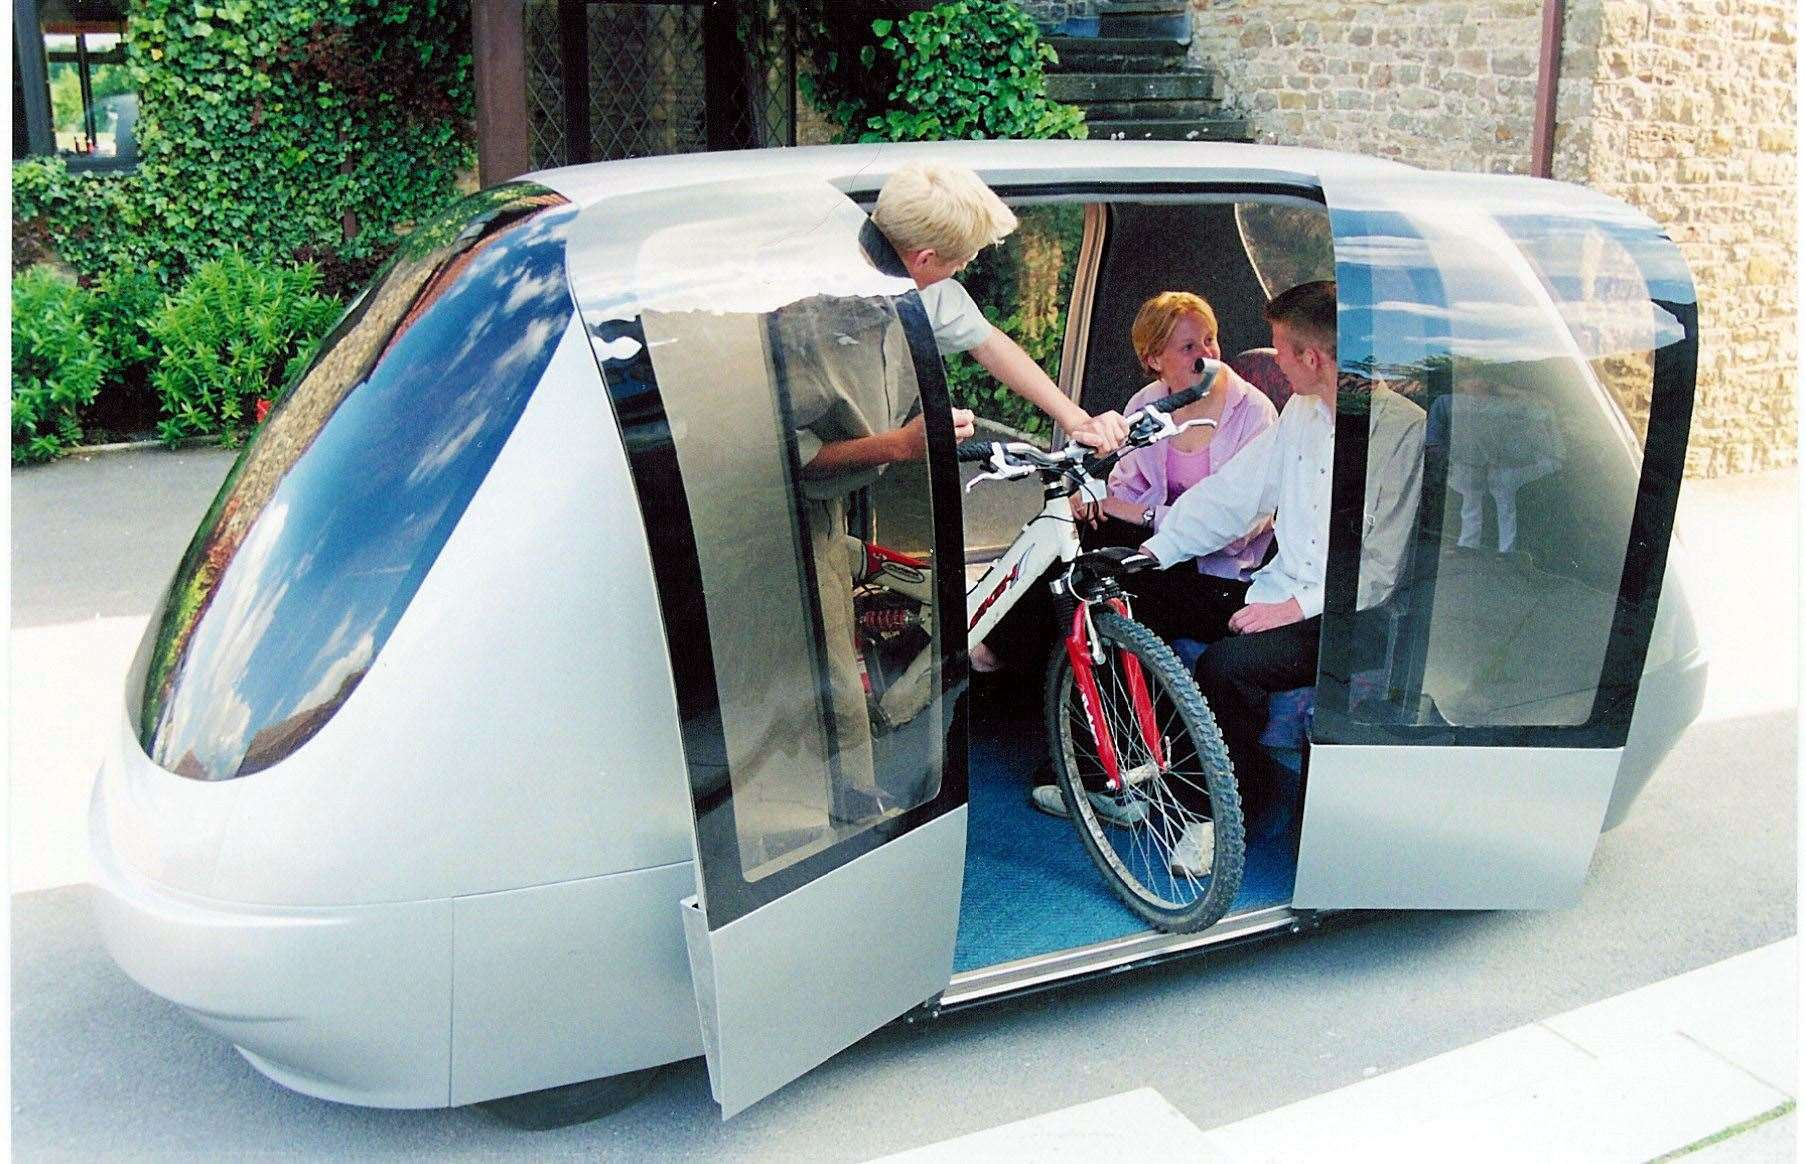 The ULTra, a revolutionary new rail transport system which carries passengers in driverless computer-controlled cabins, could provide a model for the car pods of the near future